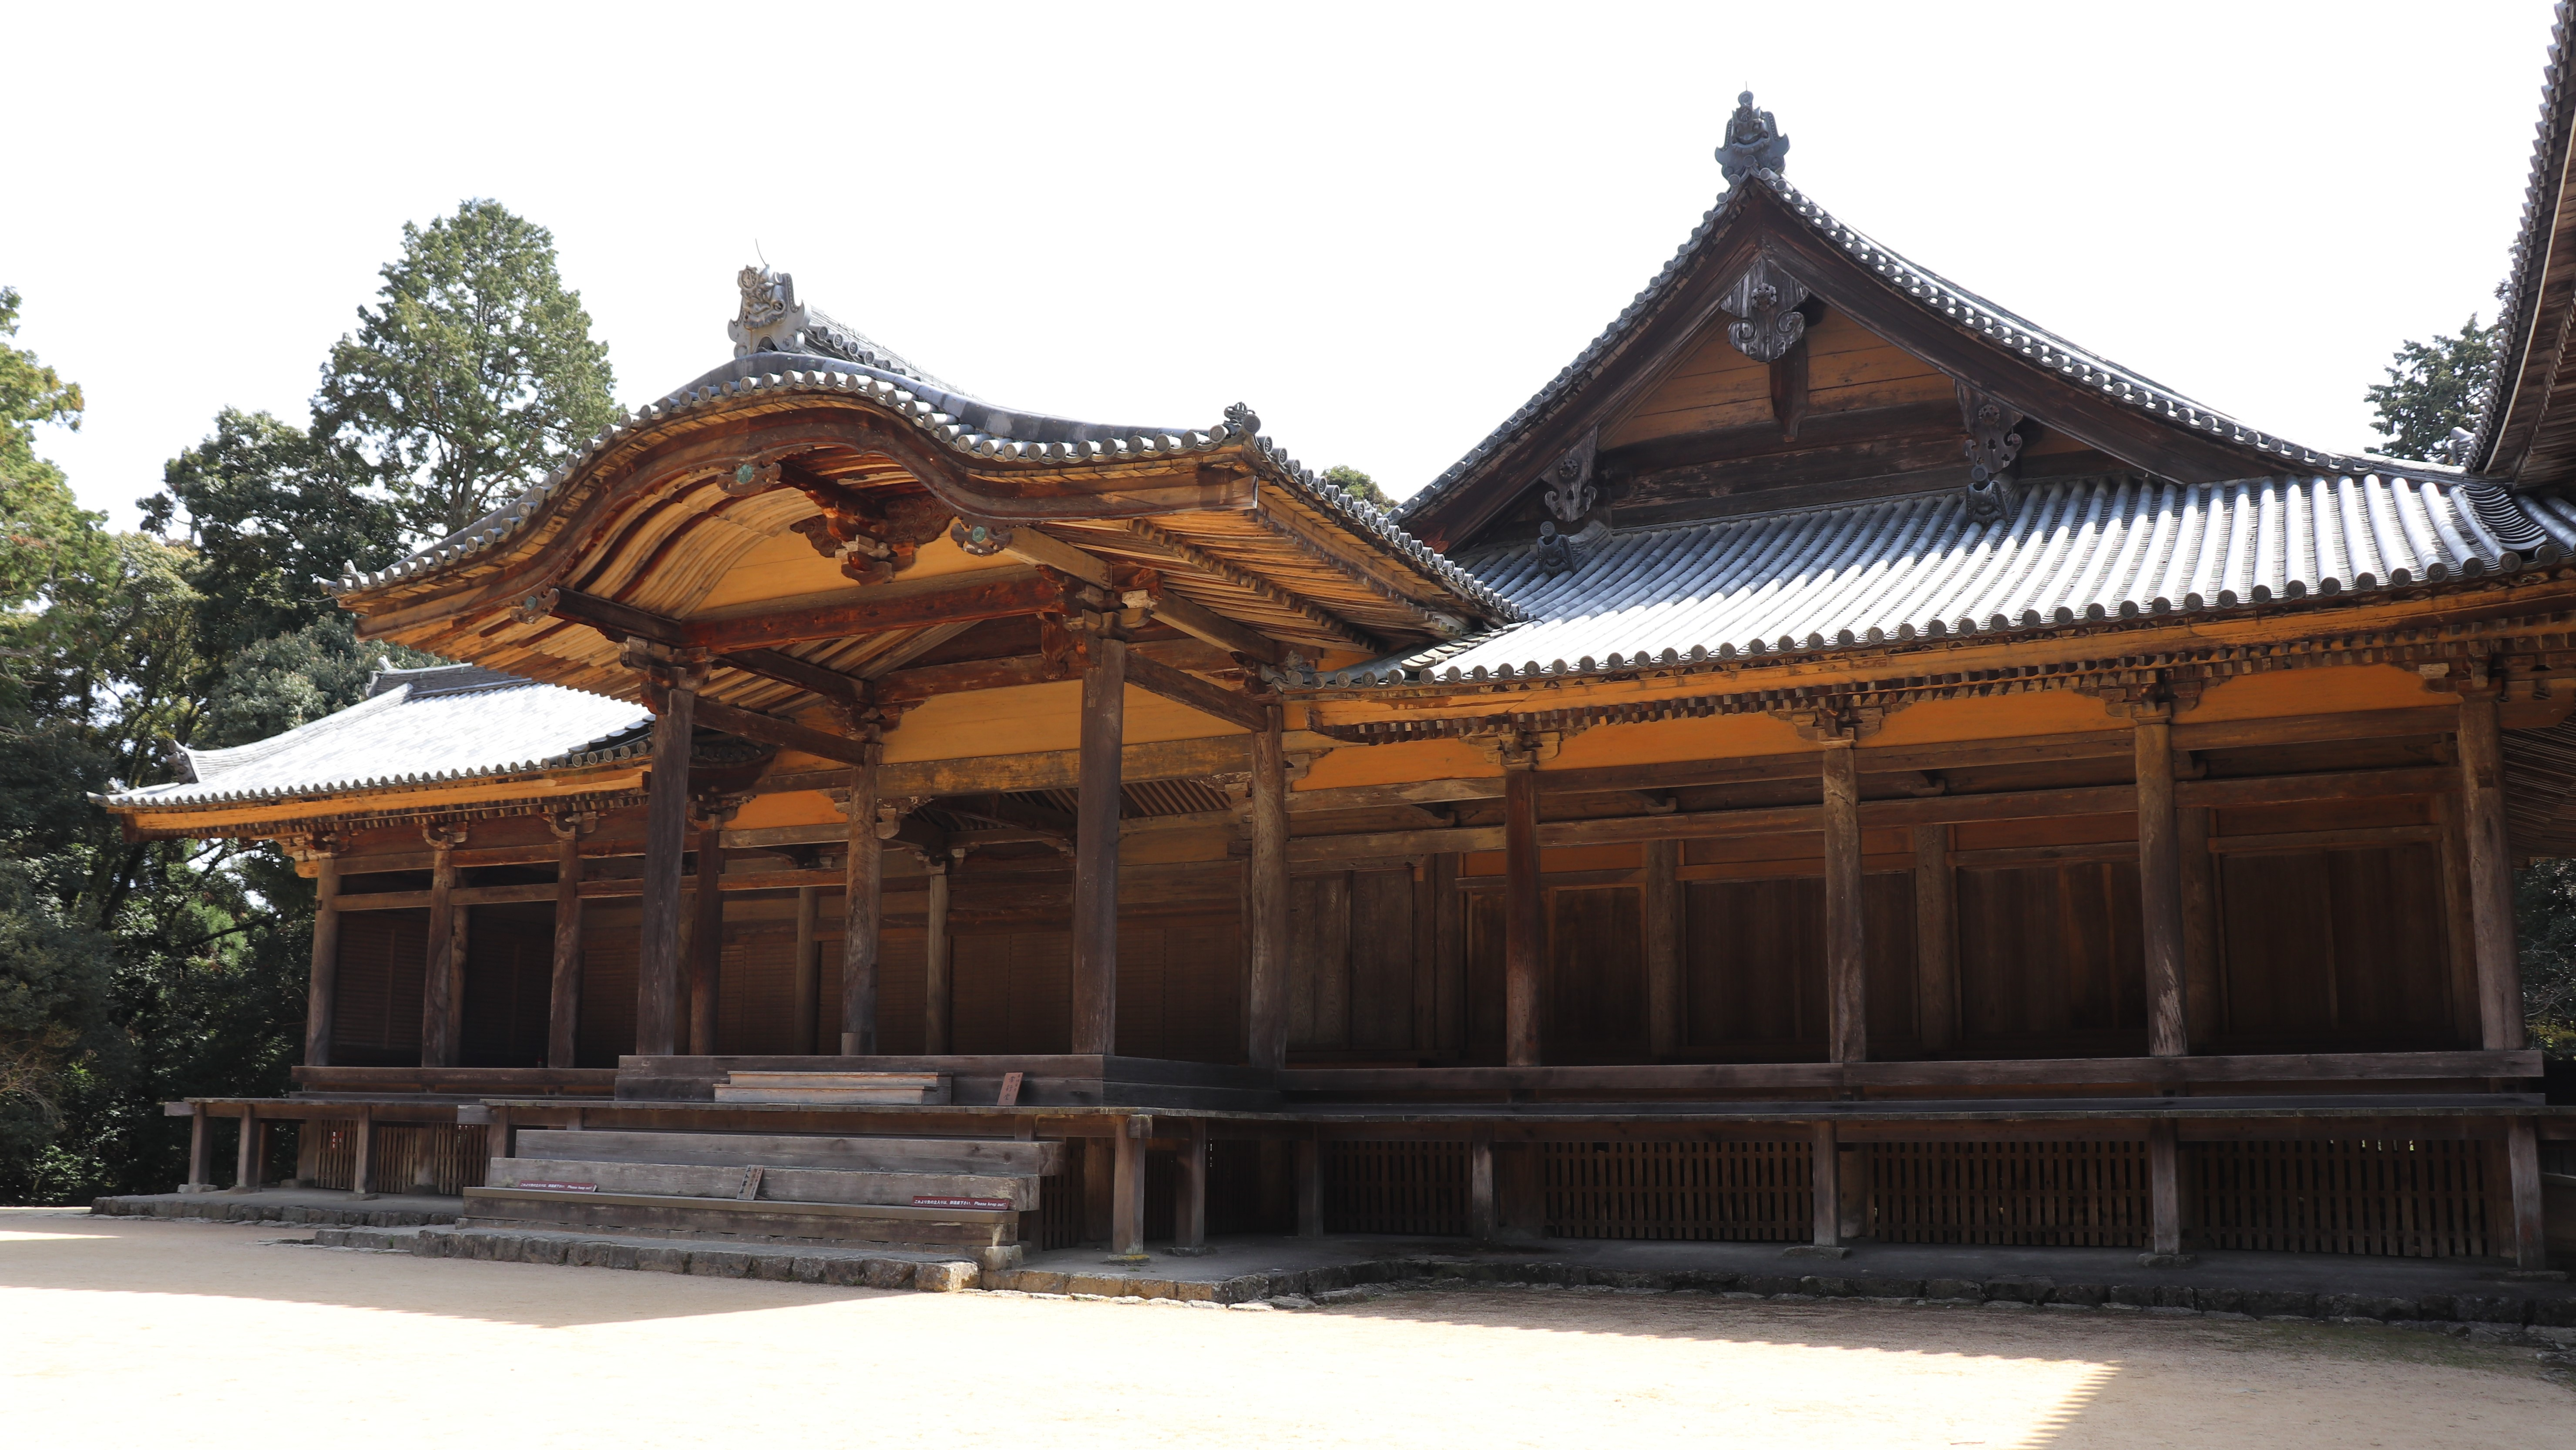 Jyogyo-do of Engyo-ji temple